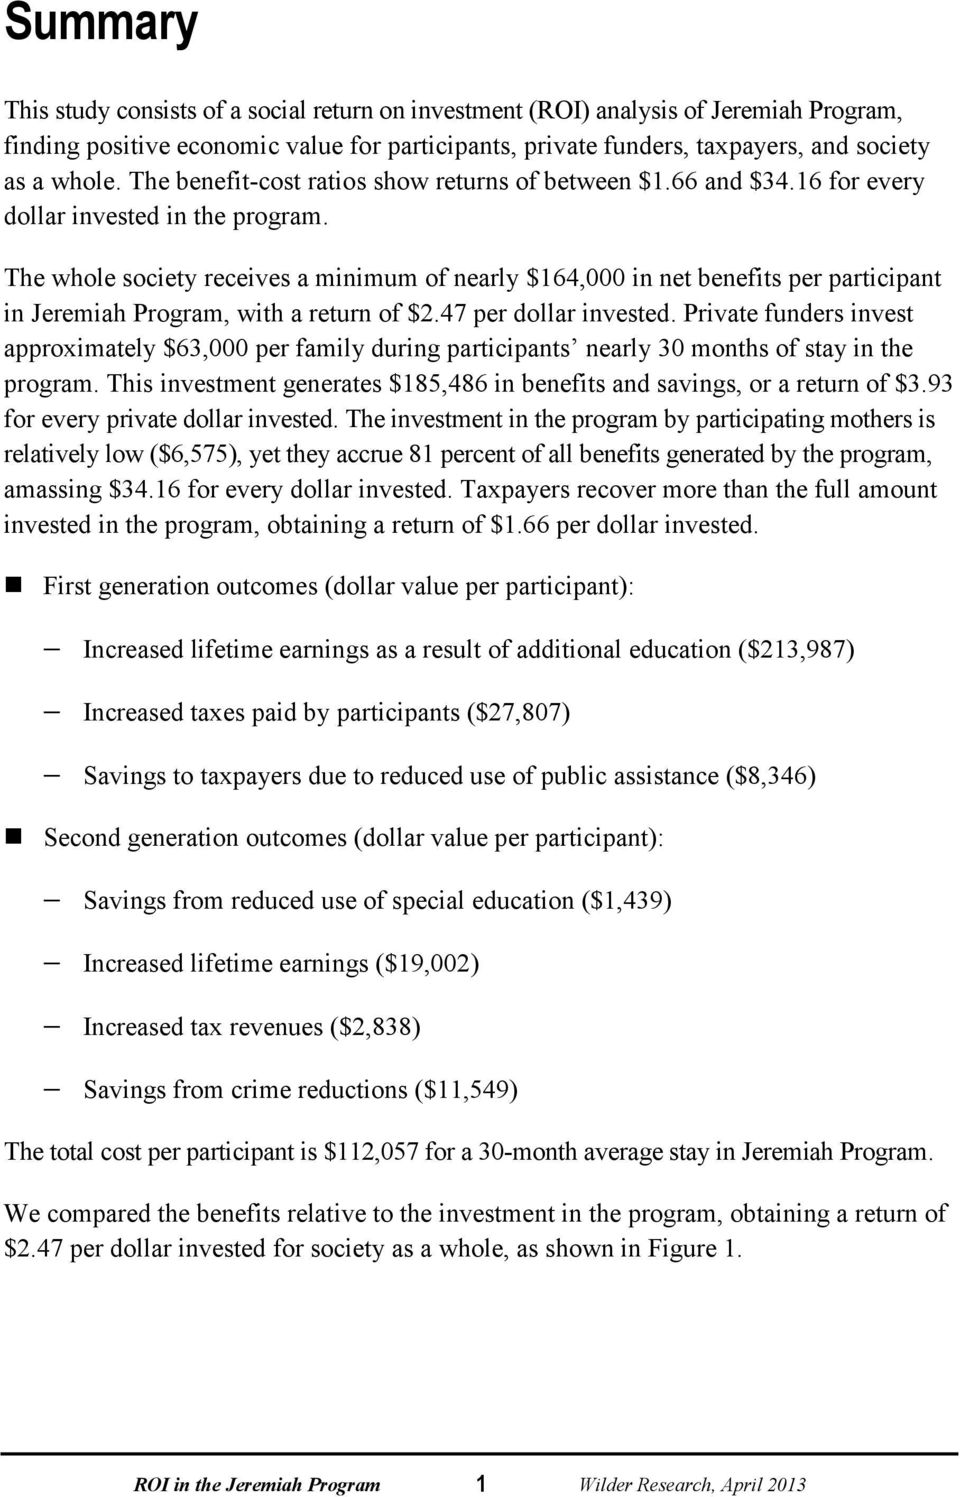 The whole society receives a minimum of nearly $164,000 in net benefits per participant in Jeremiah Program, with a return of $2.47 per dollar invested.